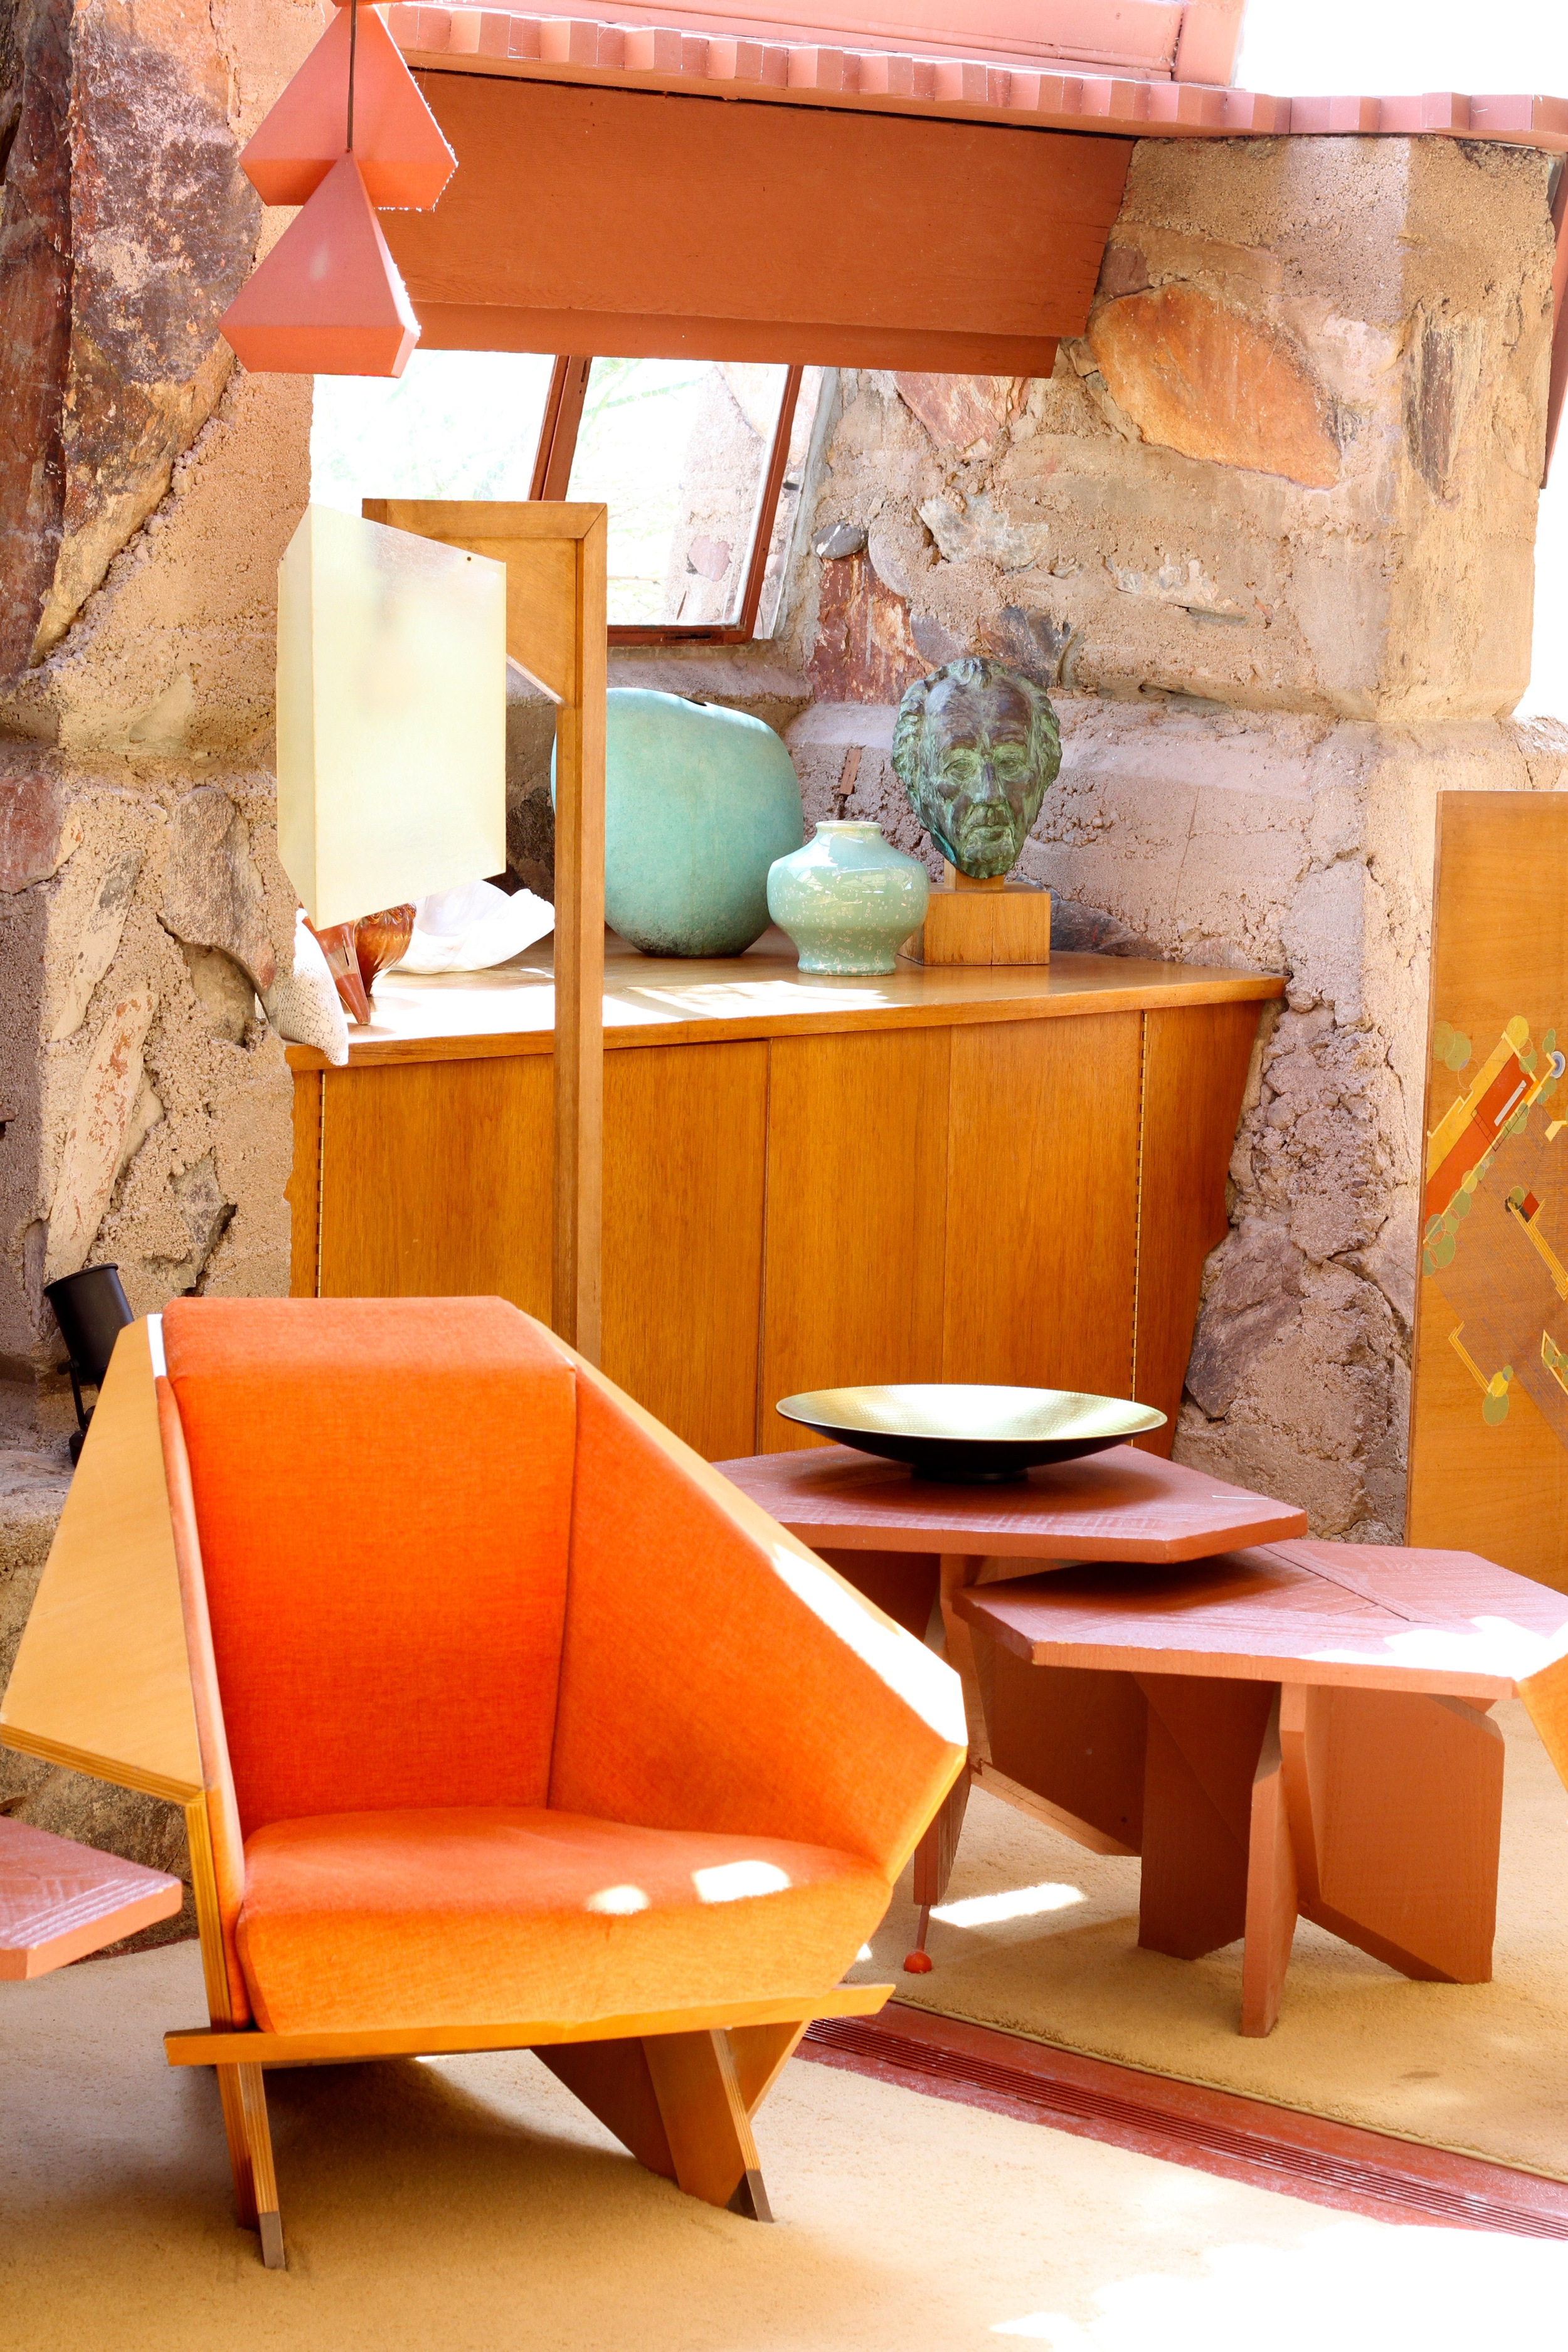 Fun fact: all the furniture at Taliesin West was also designed by Wright.